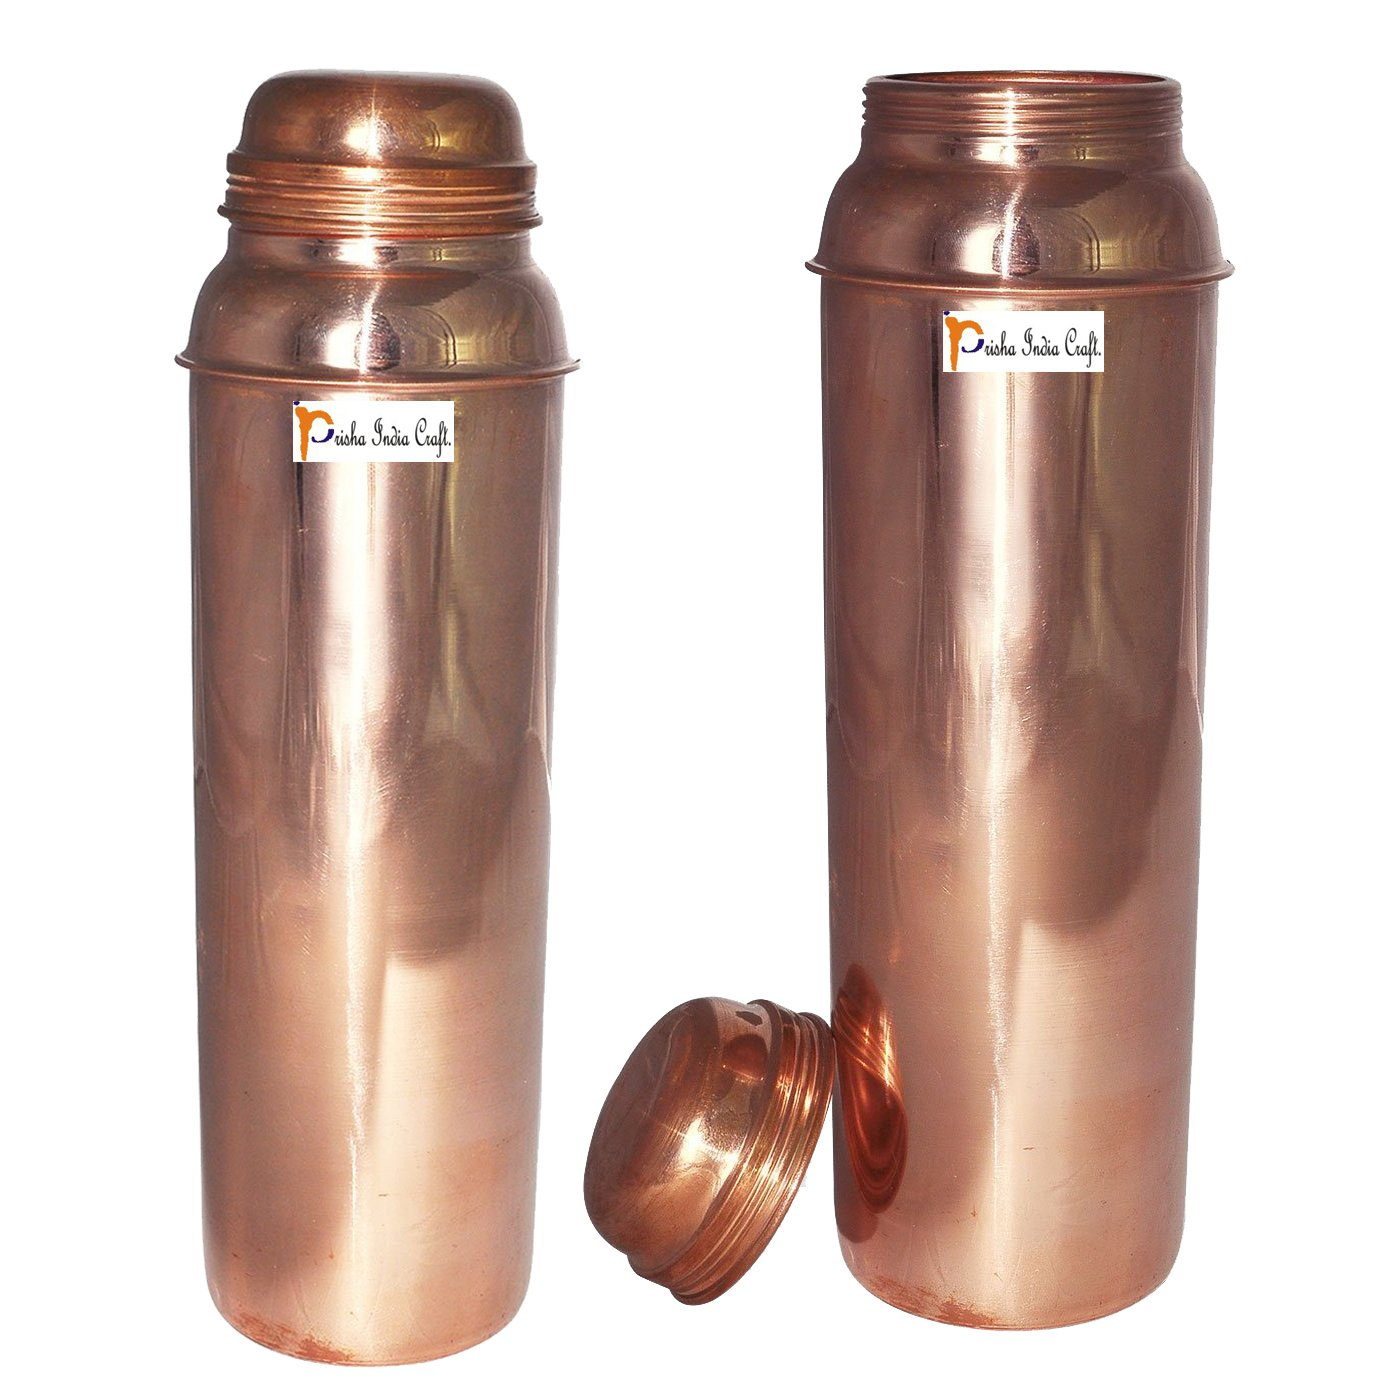 850ml / 28.74oz - Set of 2 - Prisha India Craft Pure Copper Water Bottle for Health Benefits - Water Pitcher Bottles - Handmade Christmas Gift Item